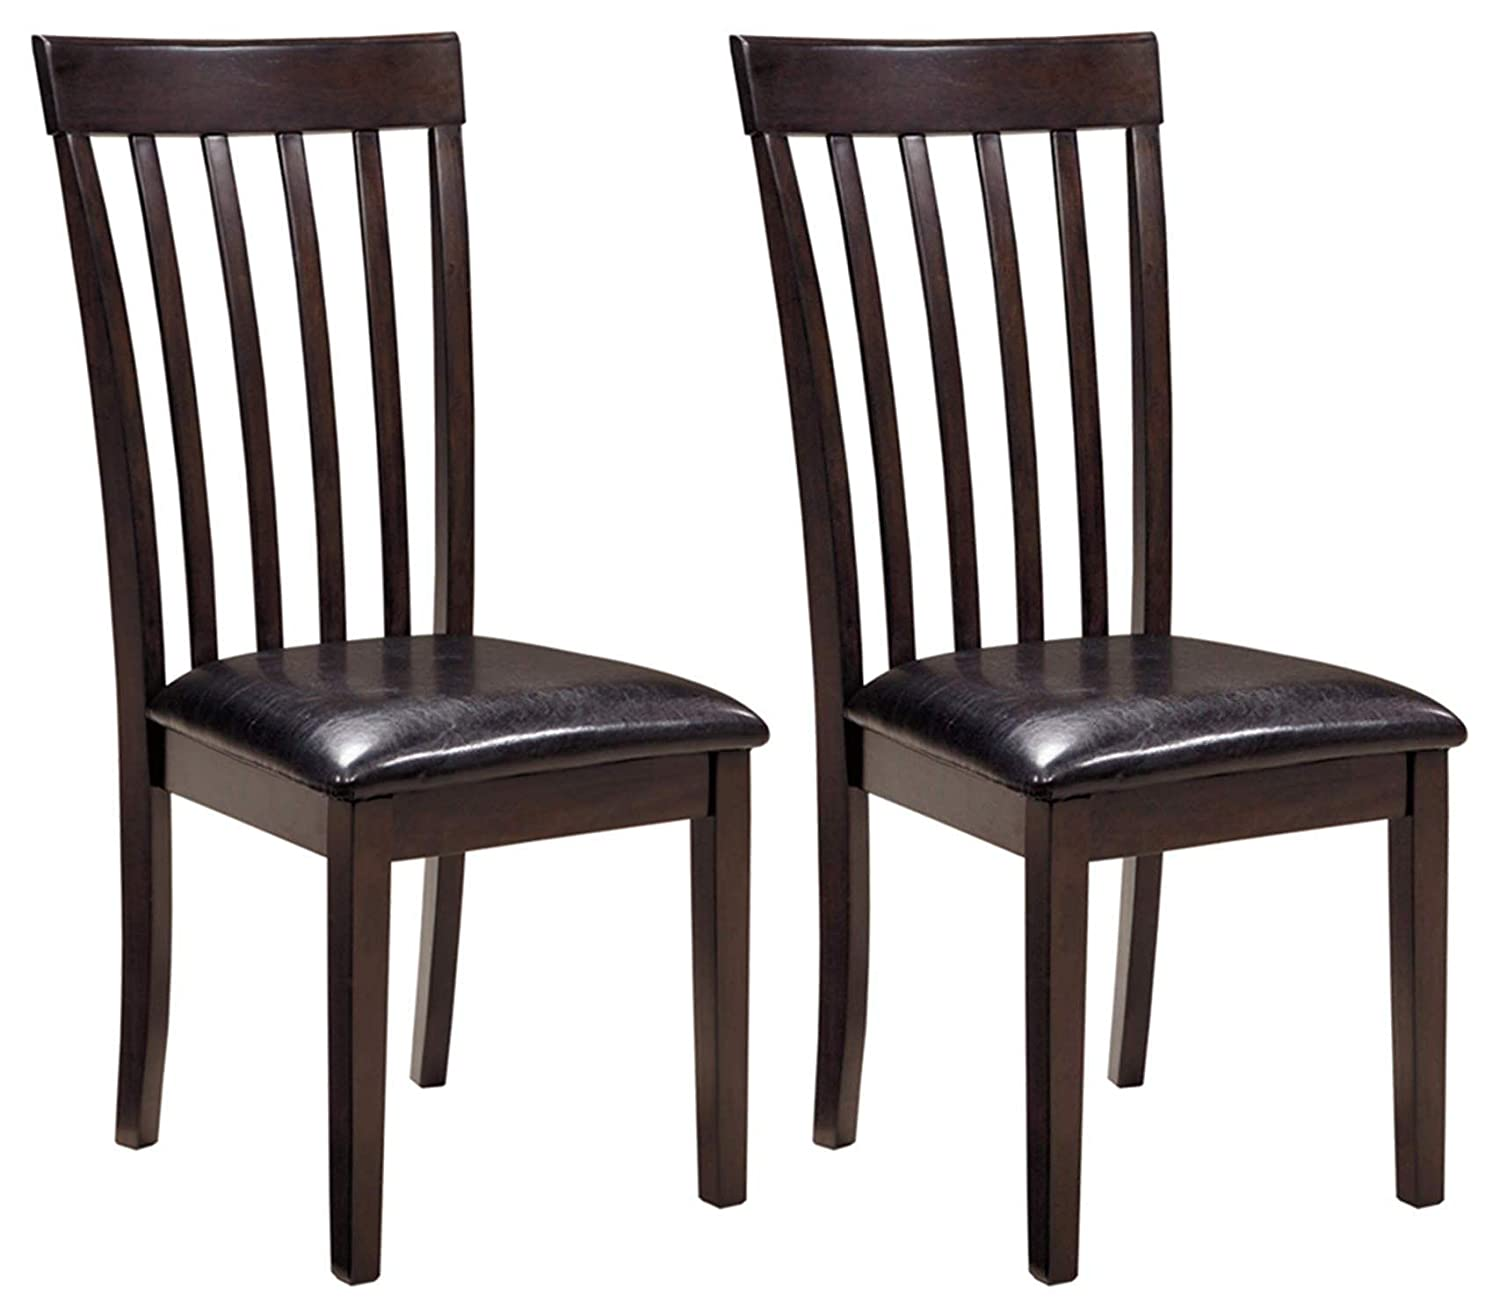 Ashley Furniture Signature Design – Hammis Dining Room Chair – Contemporary – Set of 2 – Dark Brown